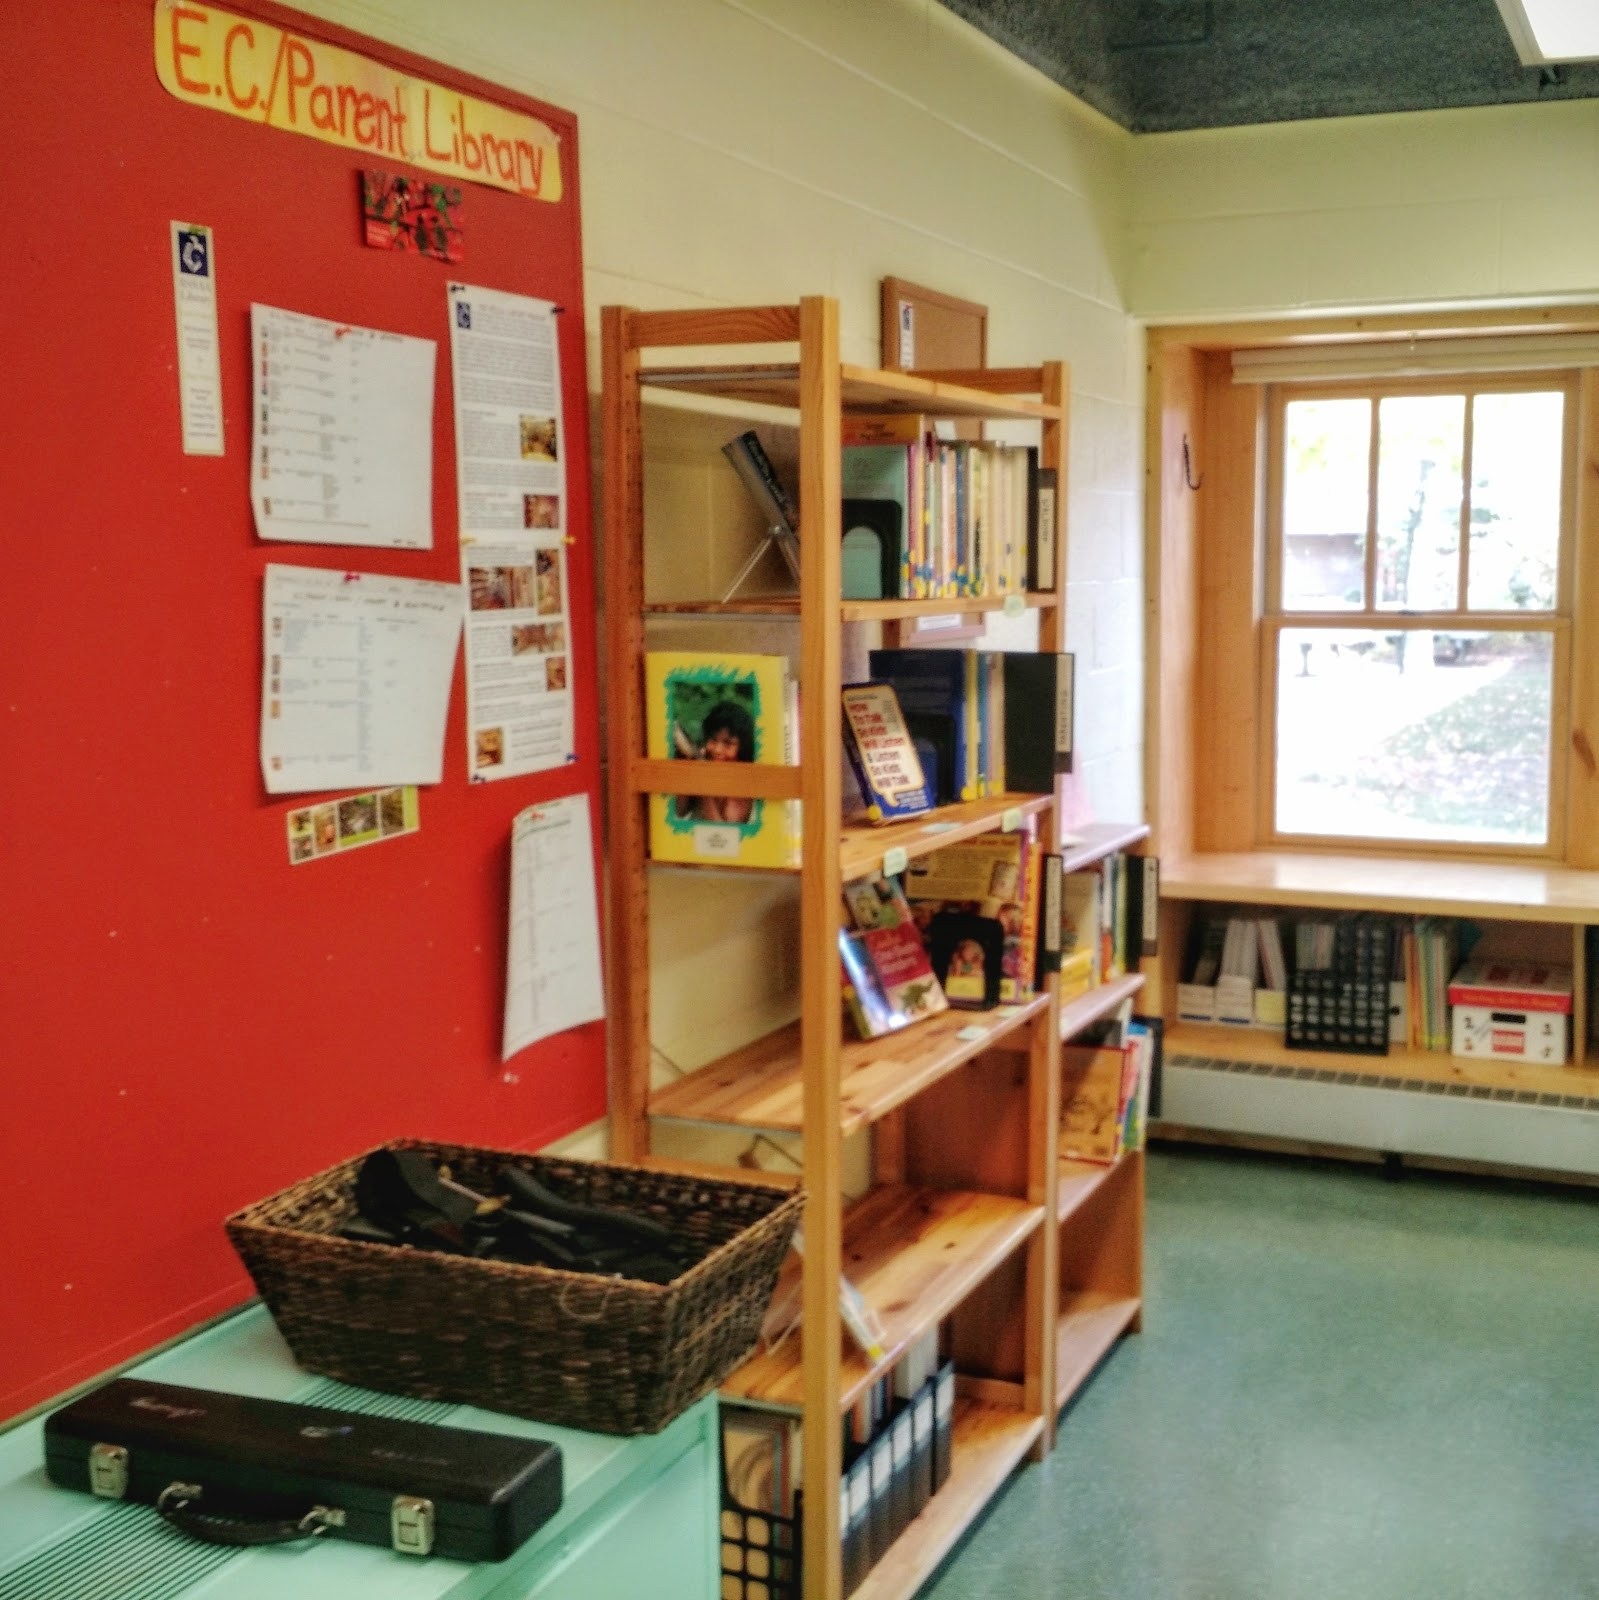 Early Childhood Library